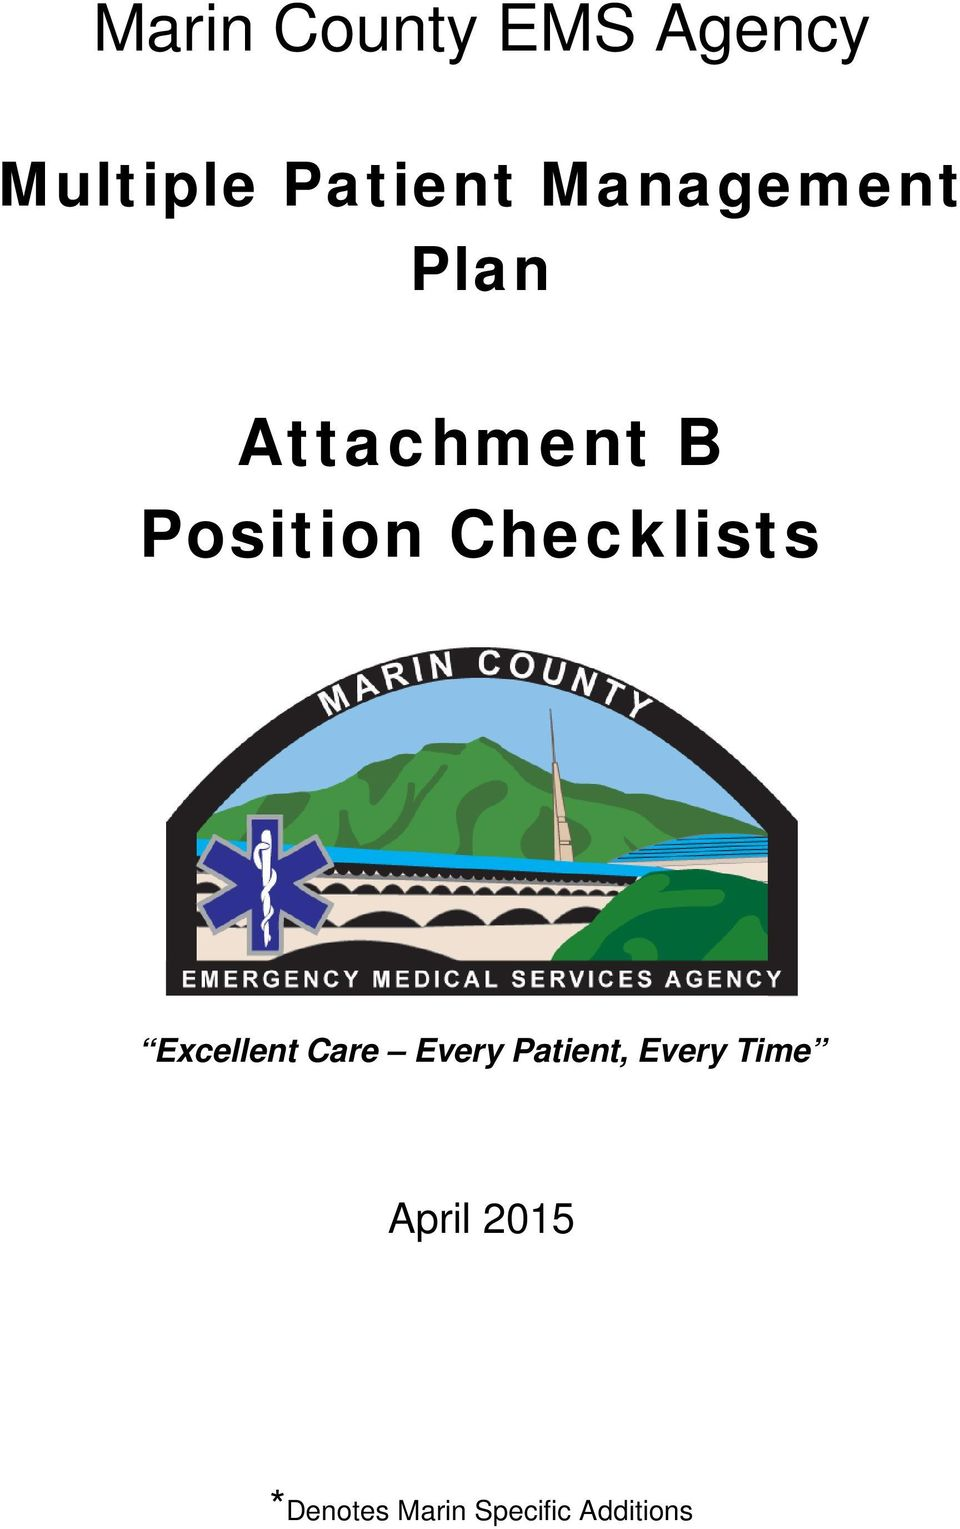 Excellent Care Every Patient, Every